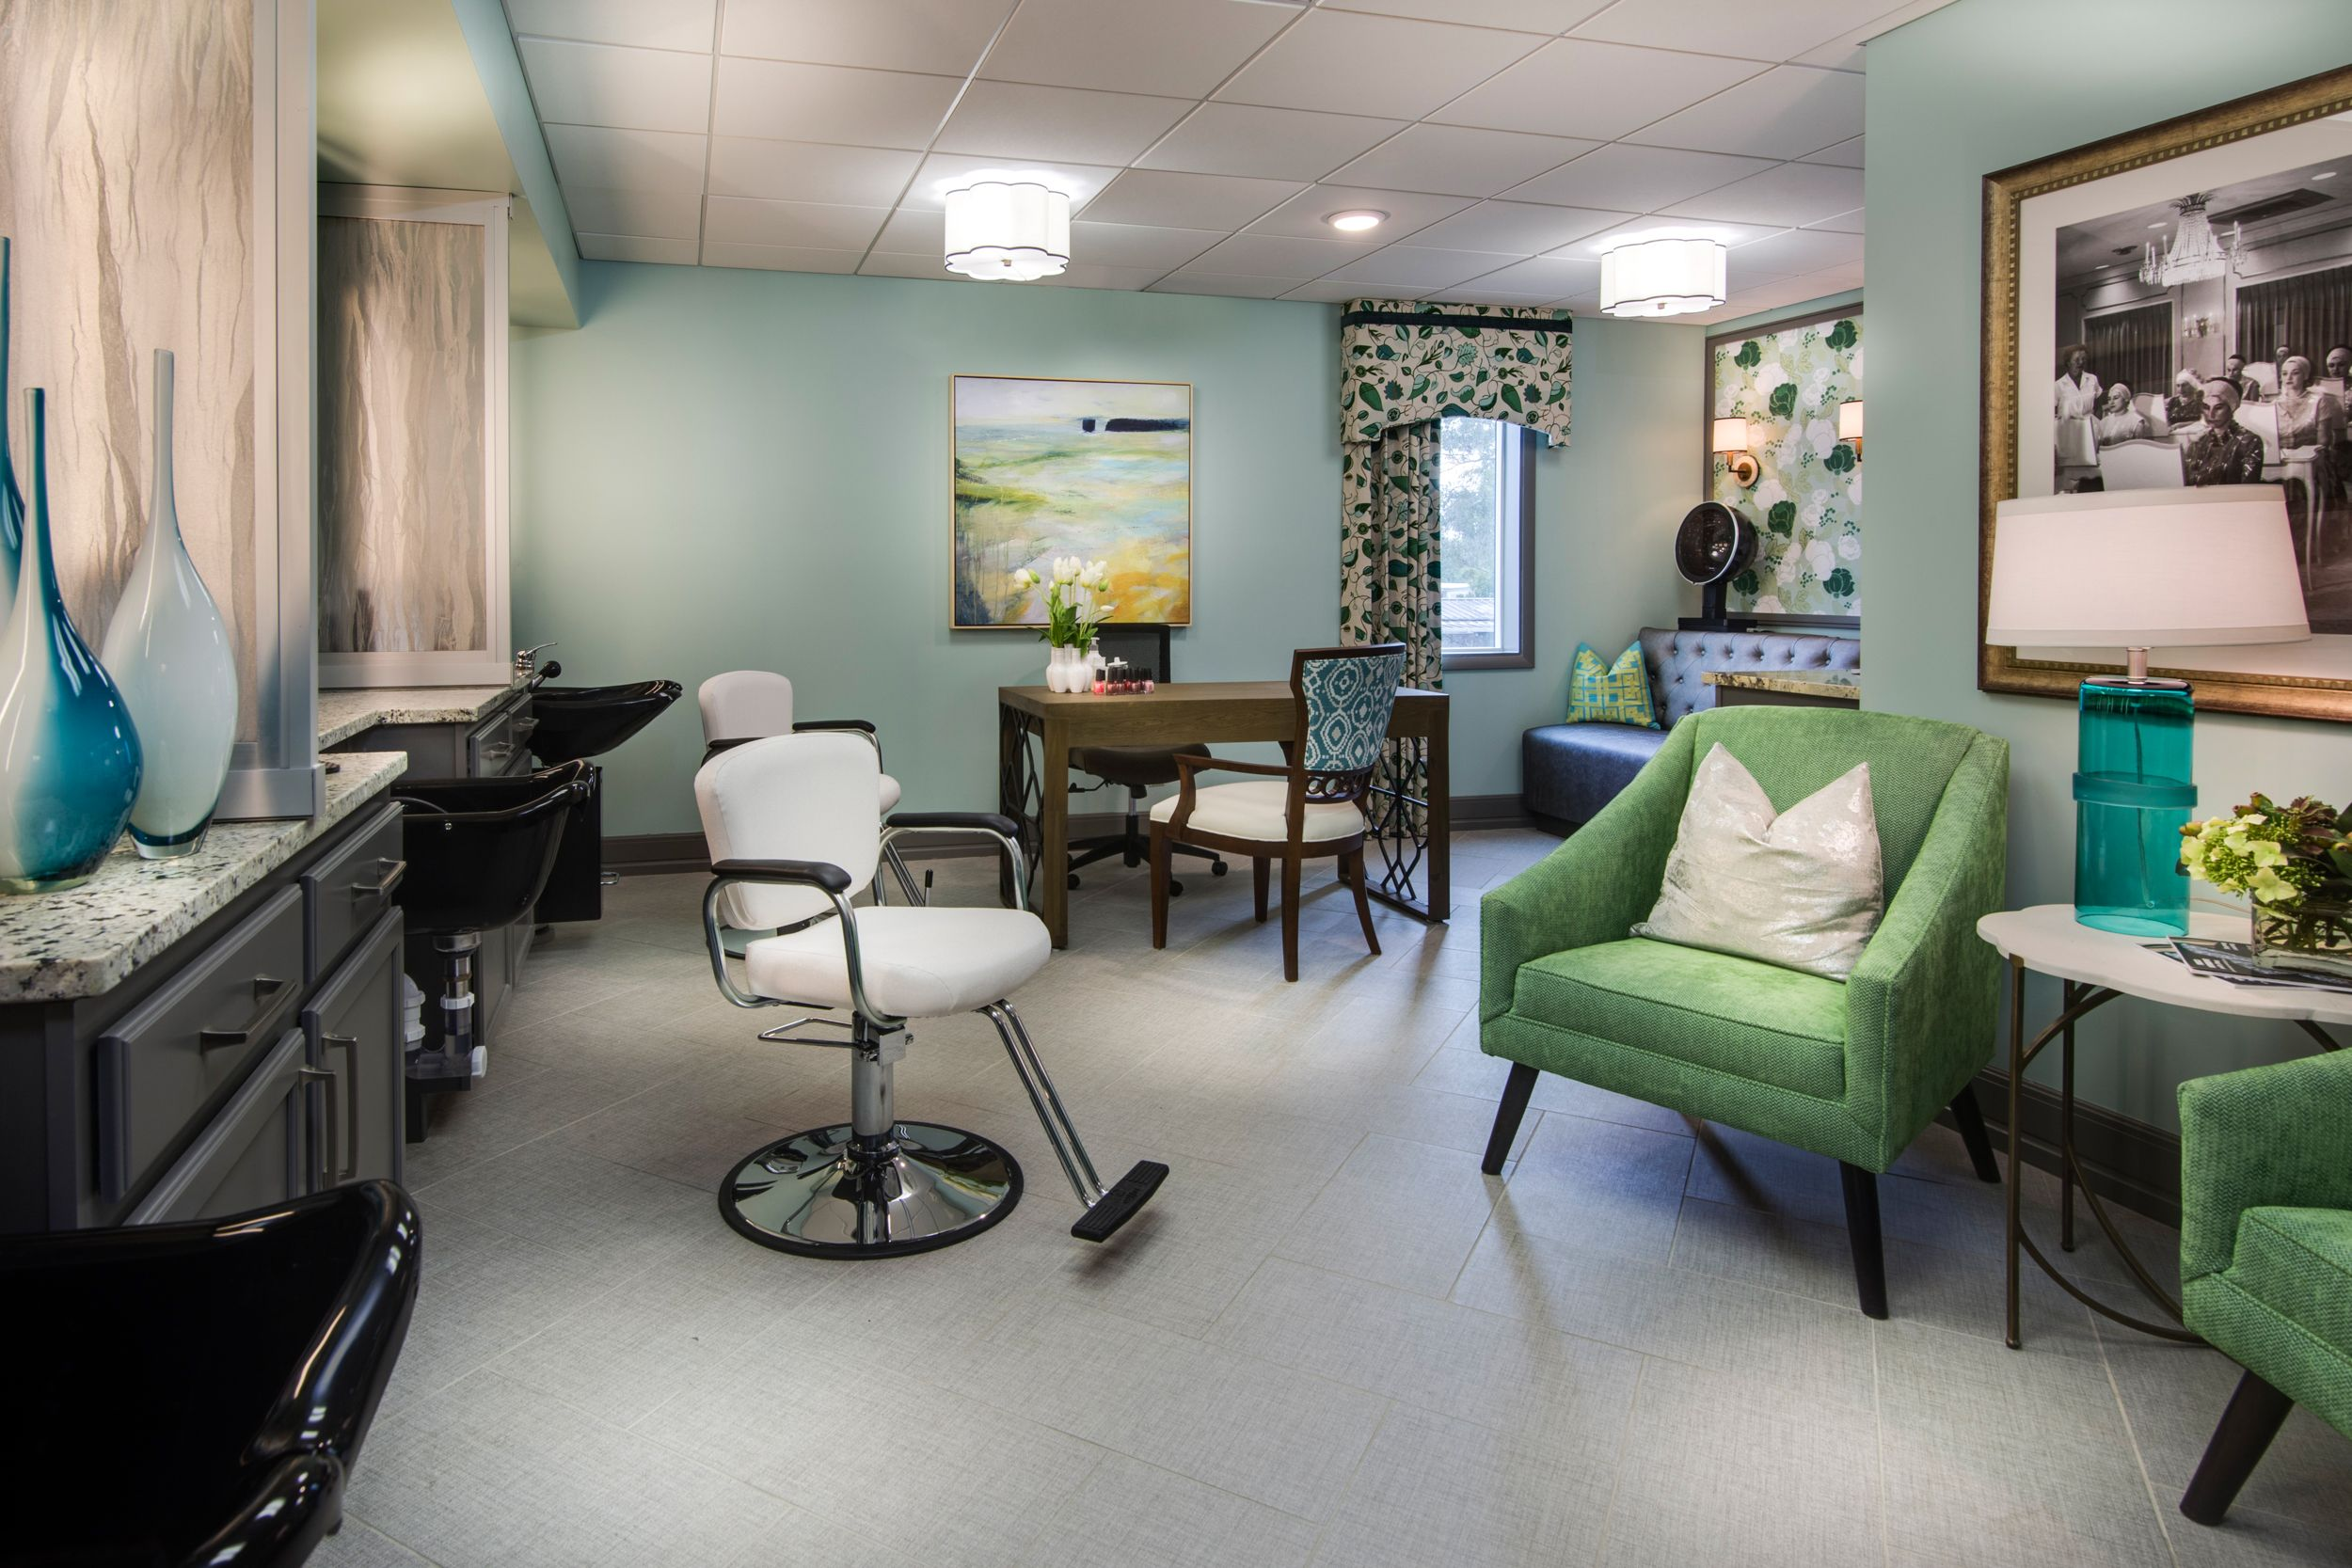 Salon Senior Senior Living Designed By Faulkner Design Group Salon